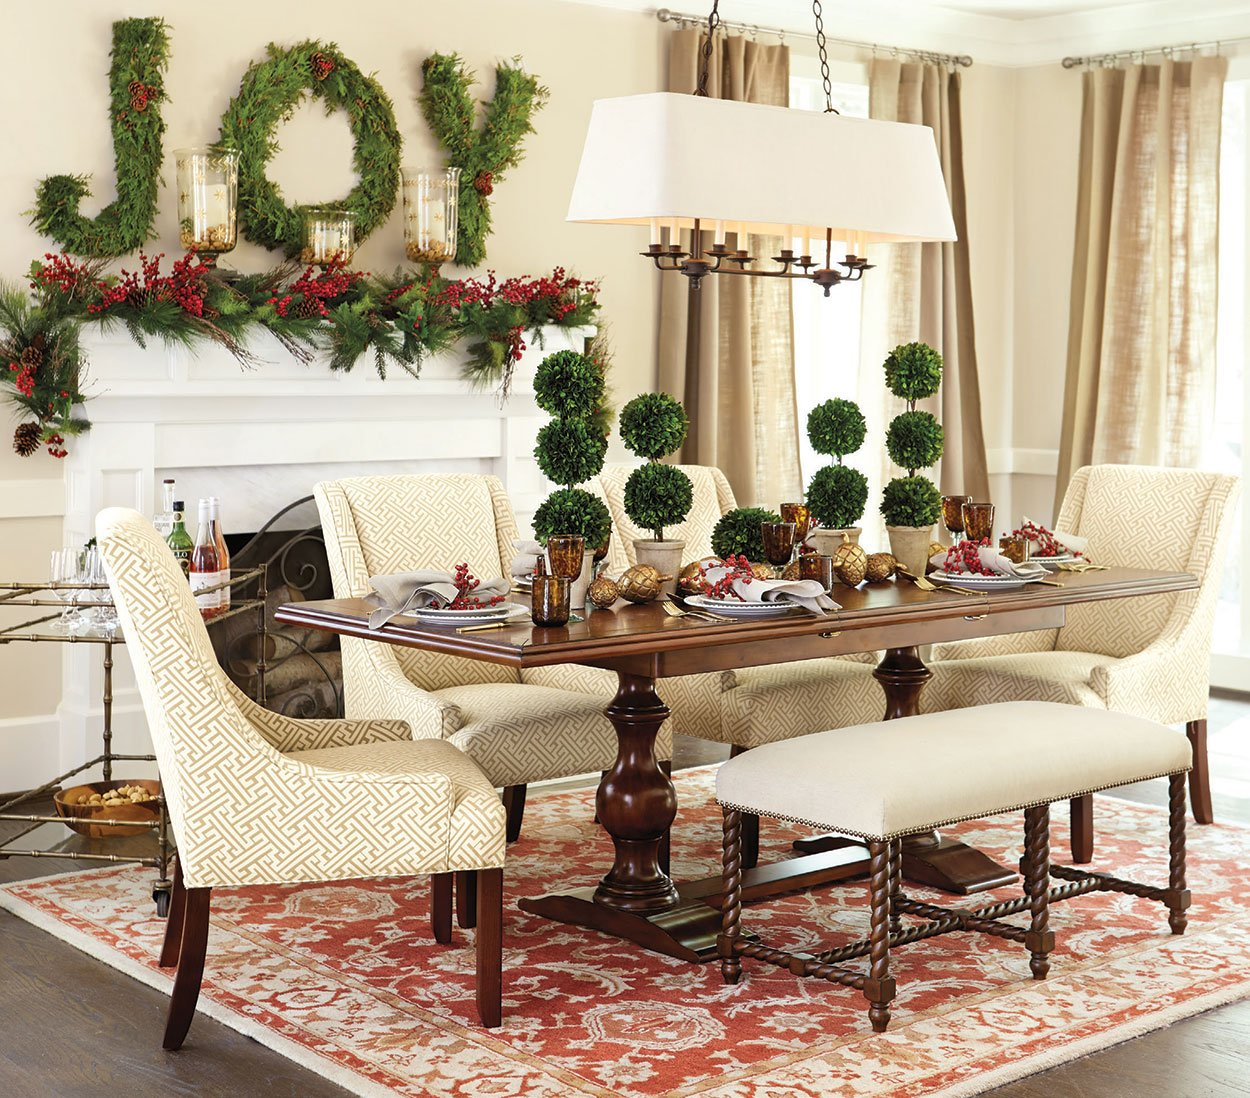 A Colorado Christmas Design Trend: Stylized Woodland